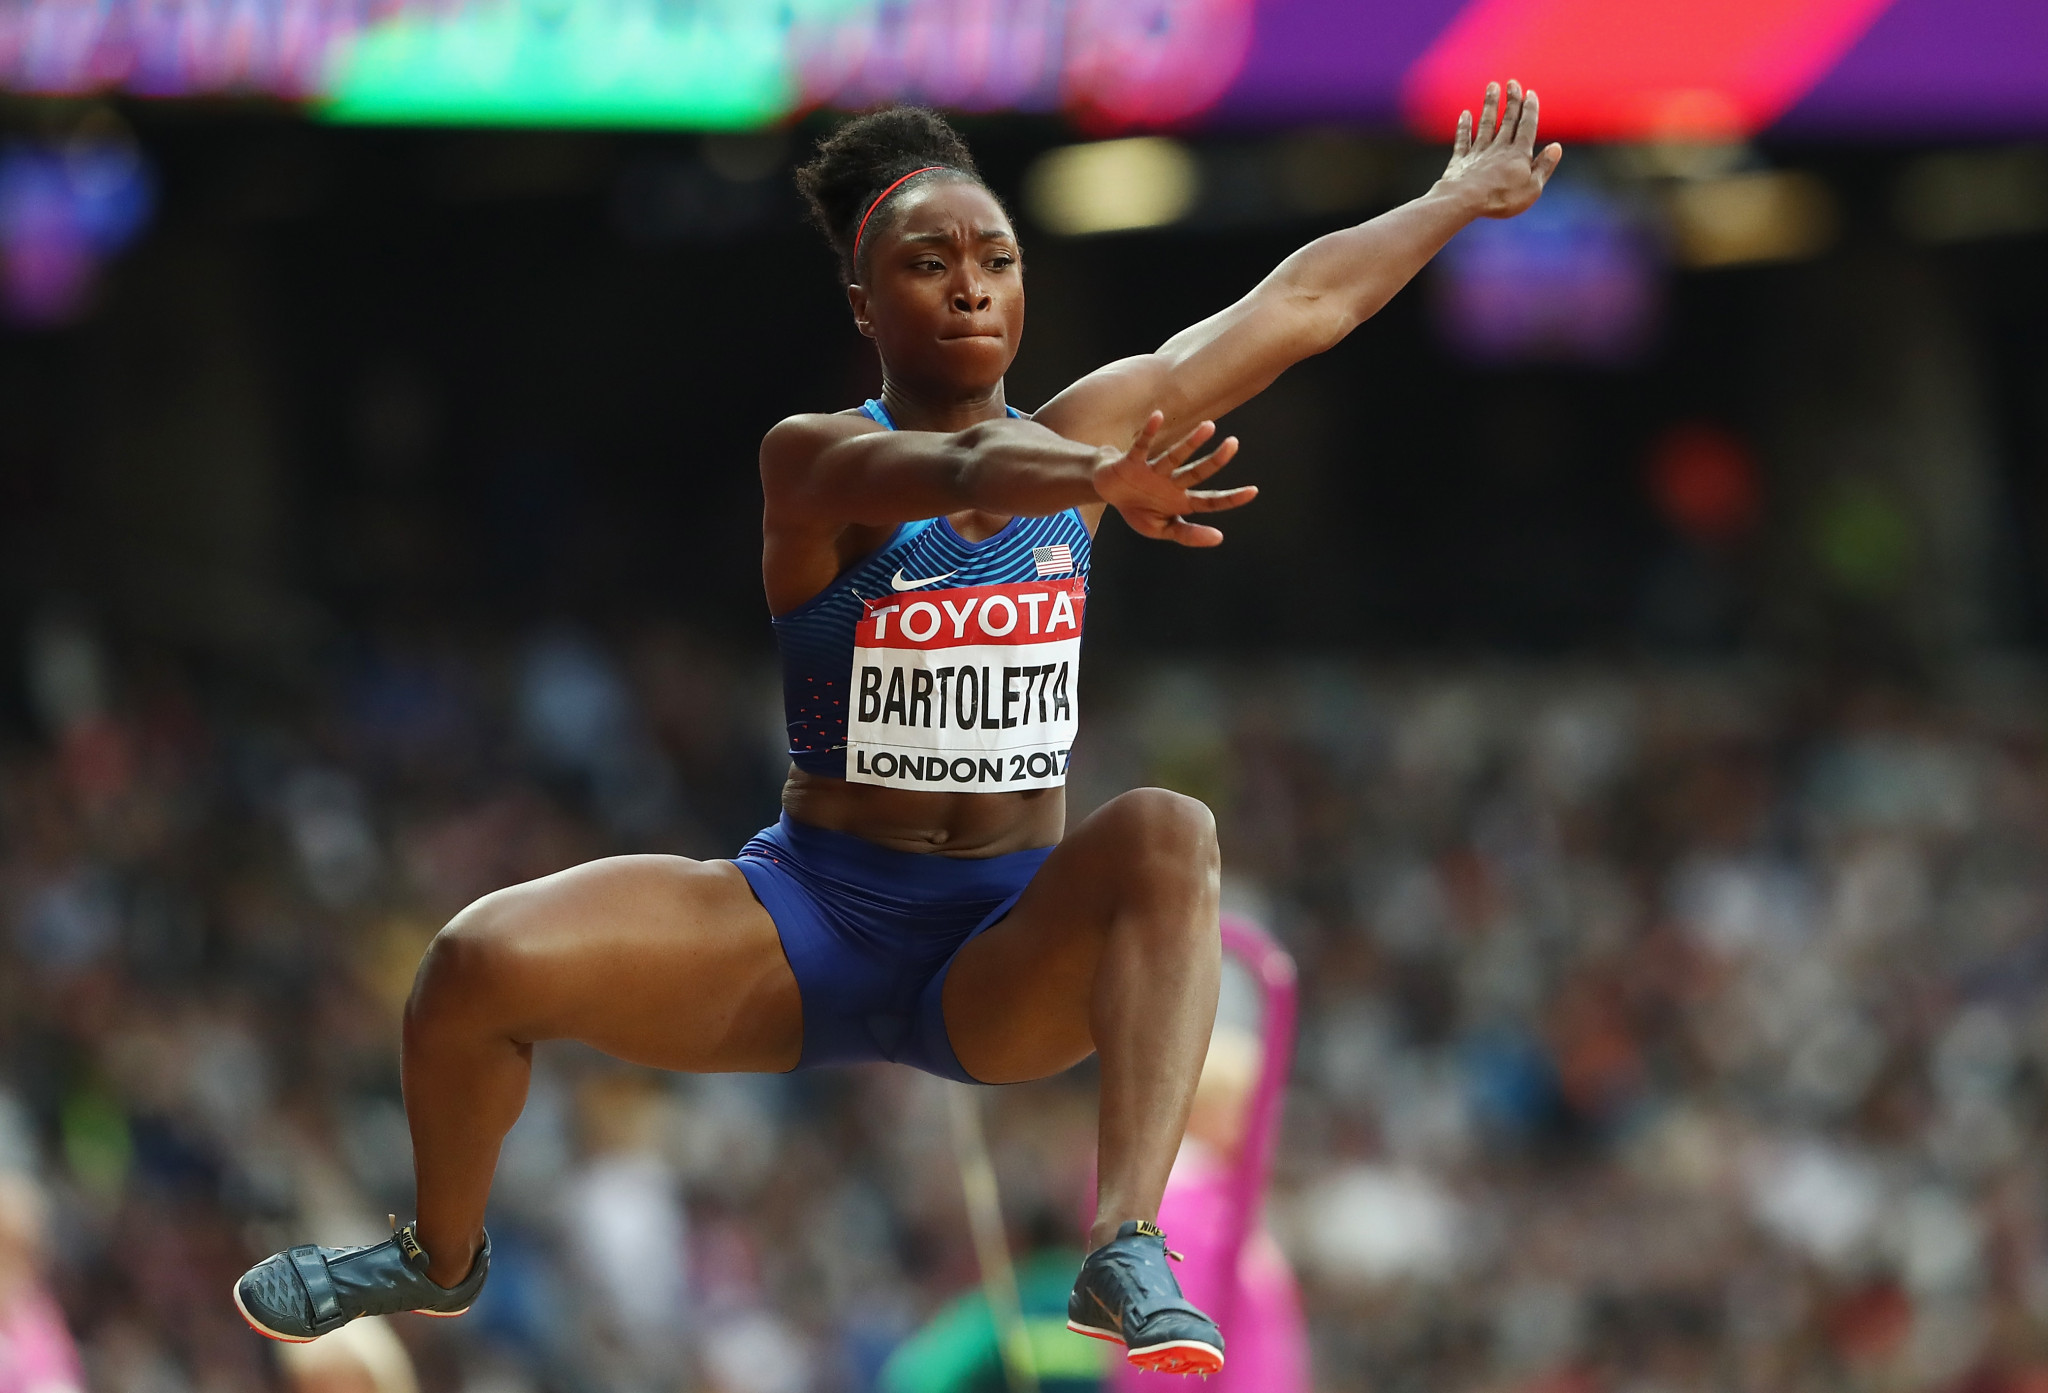 Olympic champion Bartoletta slams Coleman over attitude towards whereabouts failures